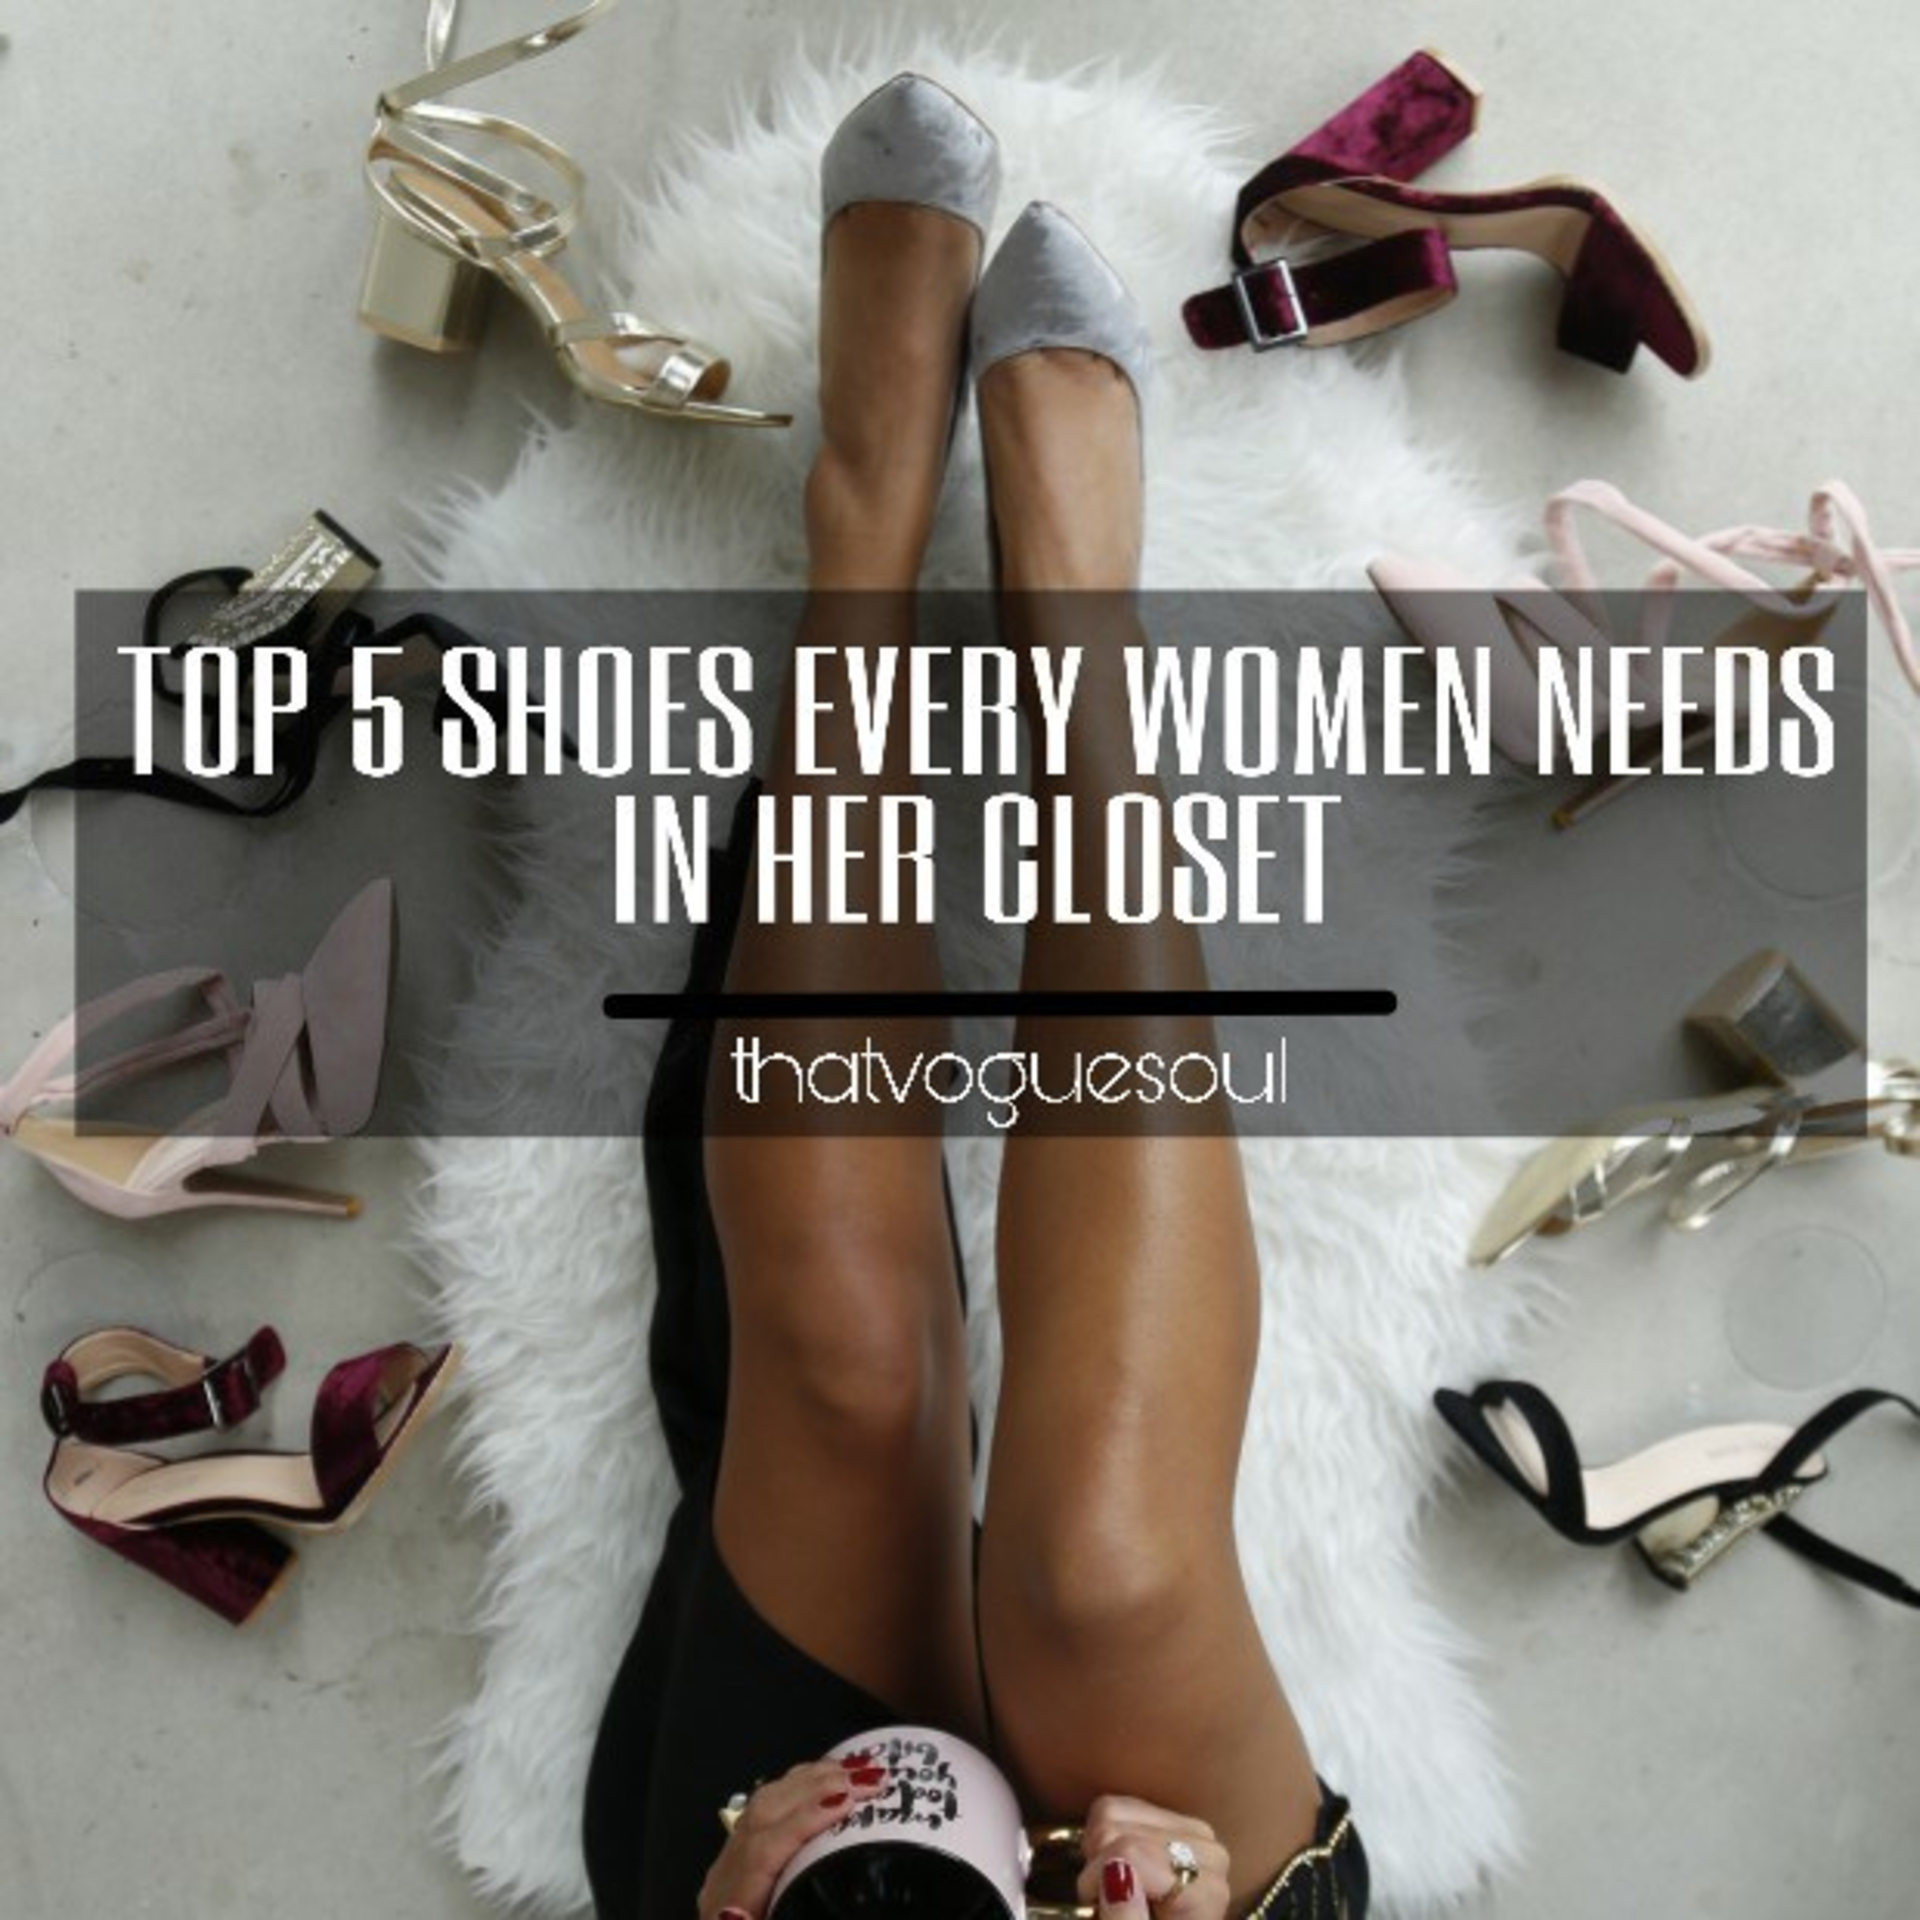 TOP 5 SHOES EVERY WOMEN NEEDS IN HER CLOSET image